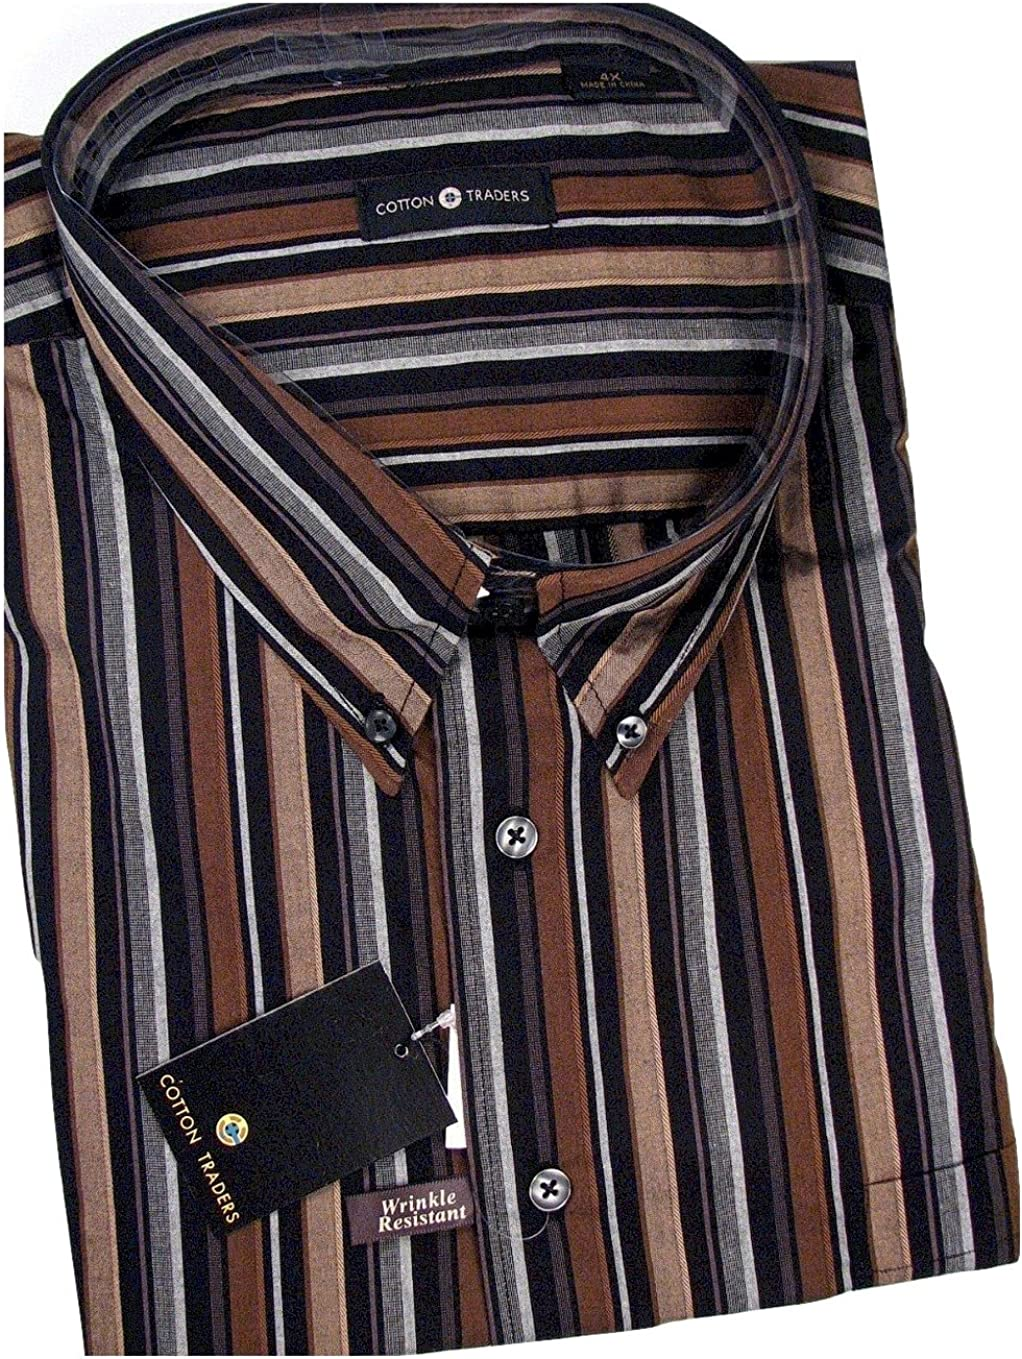 Cotton Traders Wrinkle Free Shirt Big and Tall Sizes